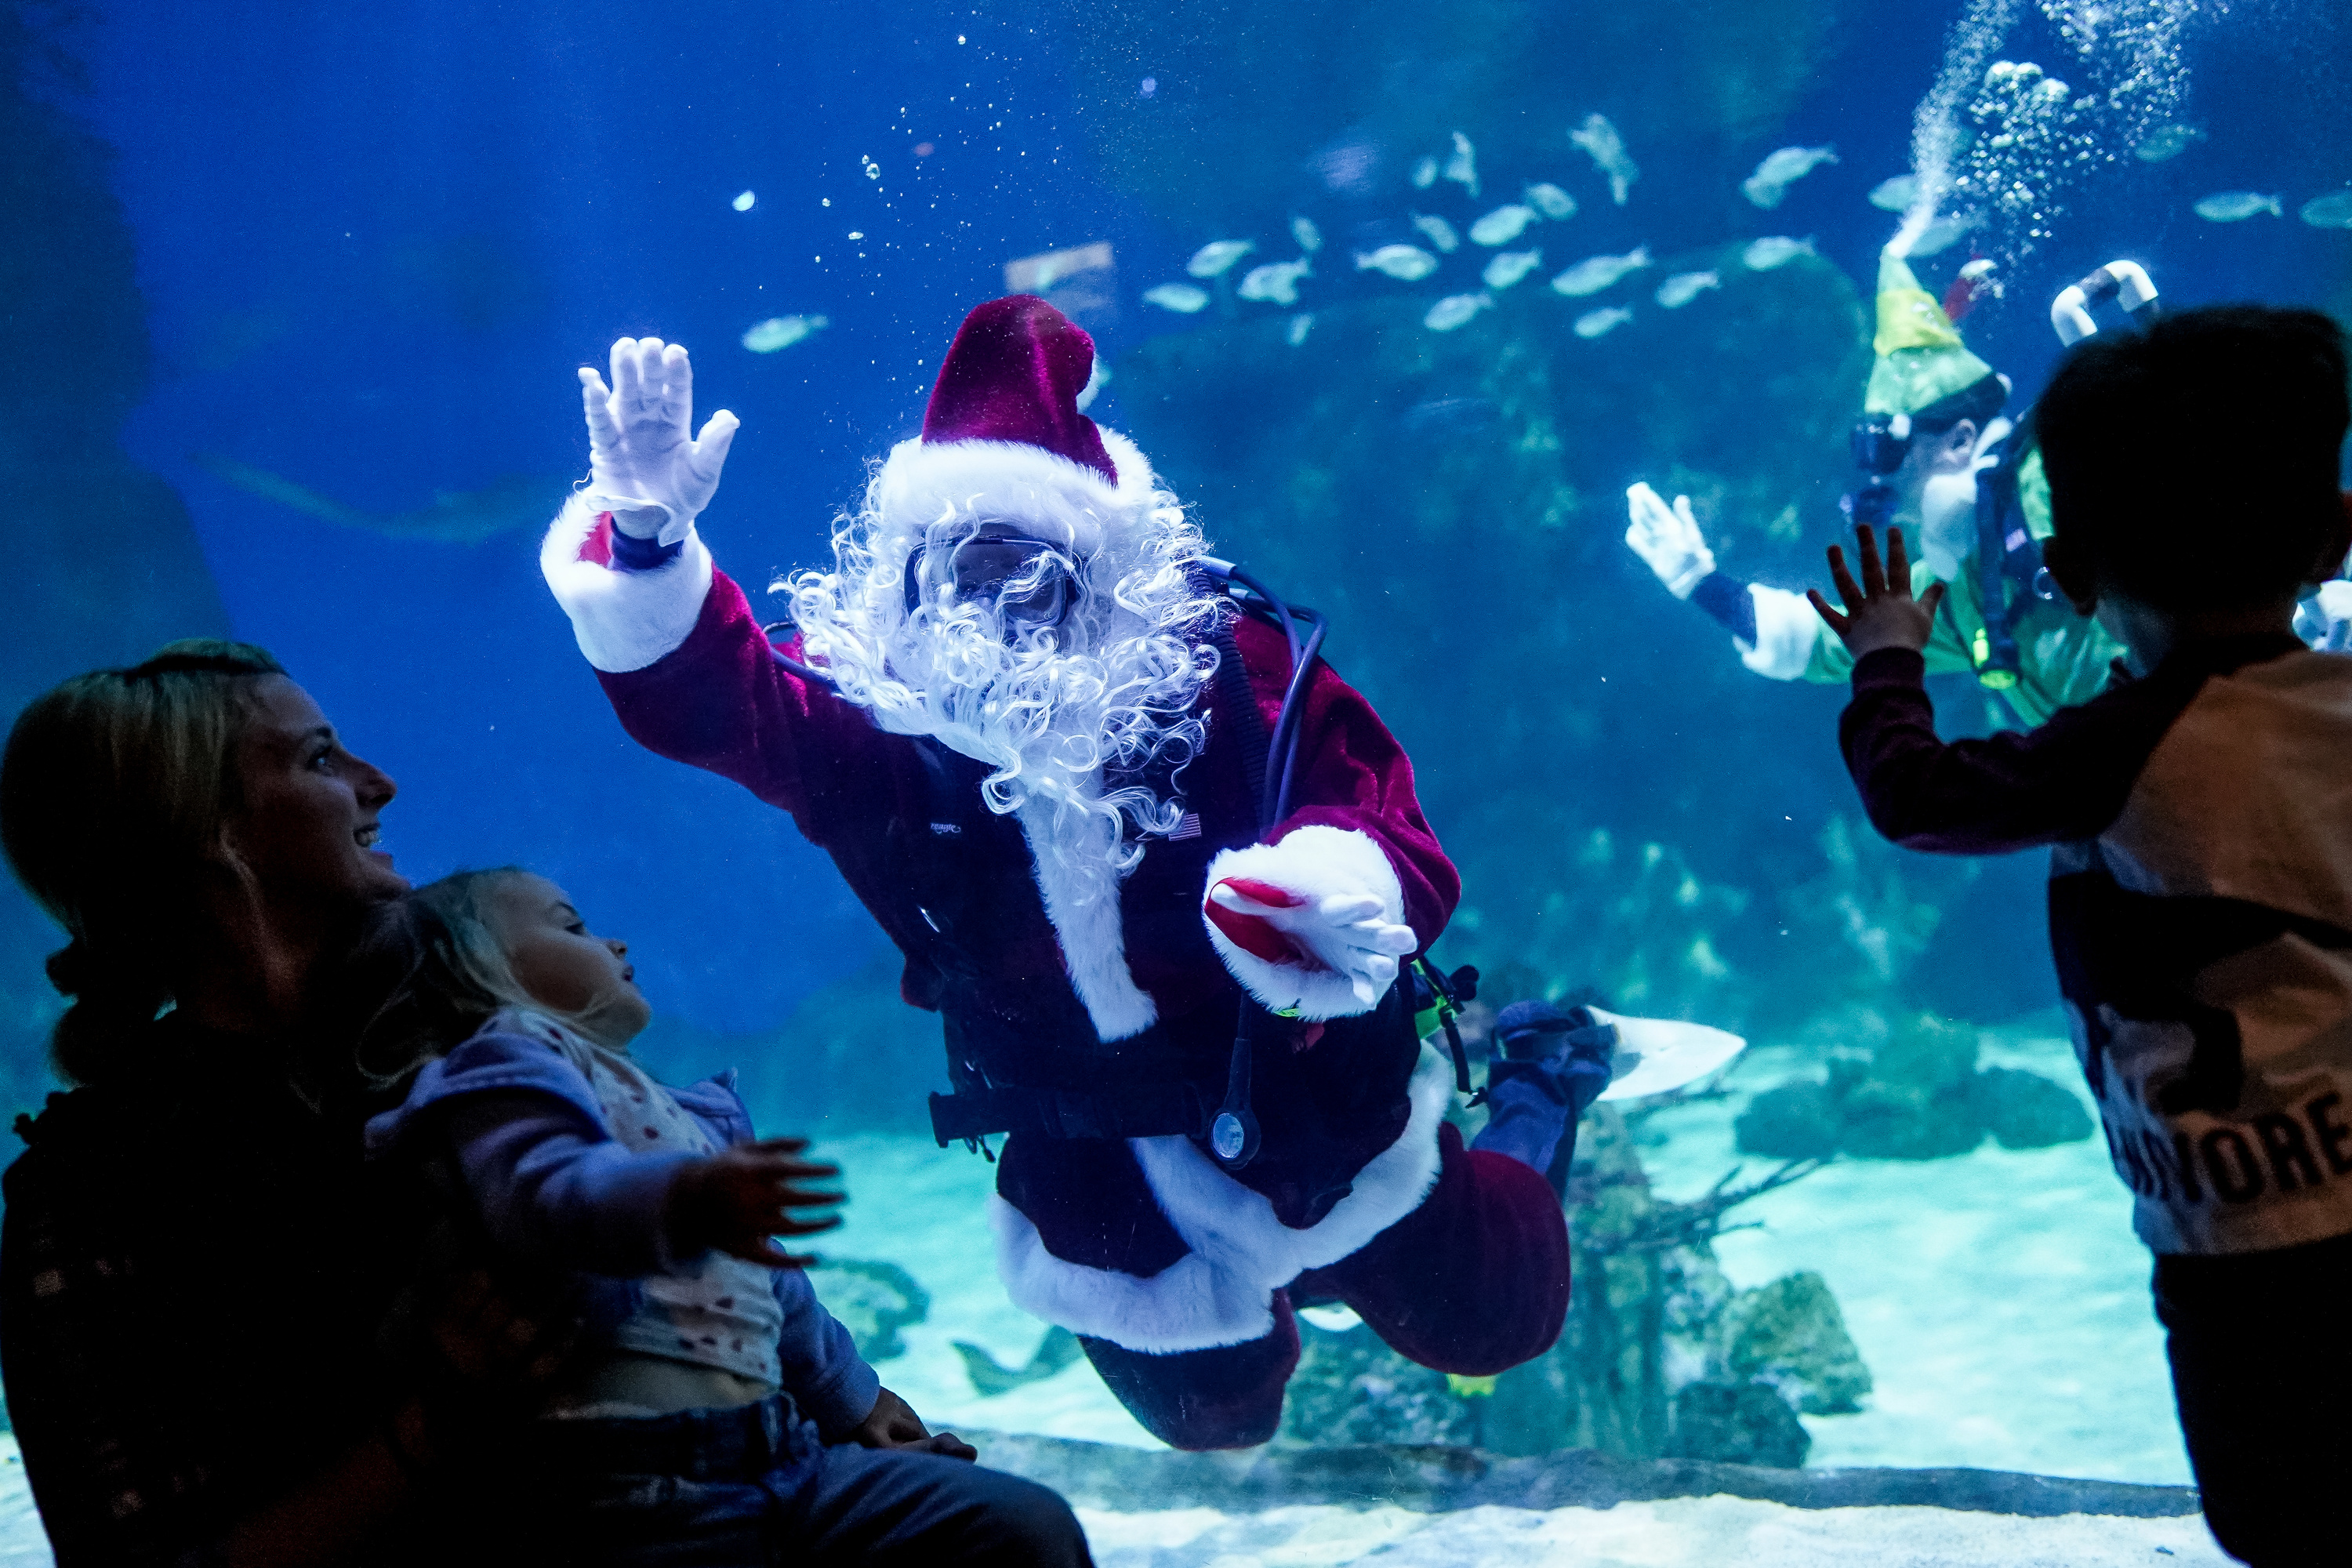 Brittany Calder and her daughter, Leah, 2, and Calvin Laskowski, 2, watch as Santa and one of his elves scuba dive at the Loveland Living Planet Aquarium in Draper on Wednesday, Dec. 11, 2019.